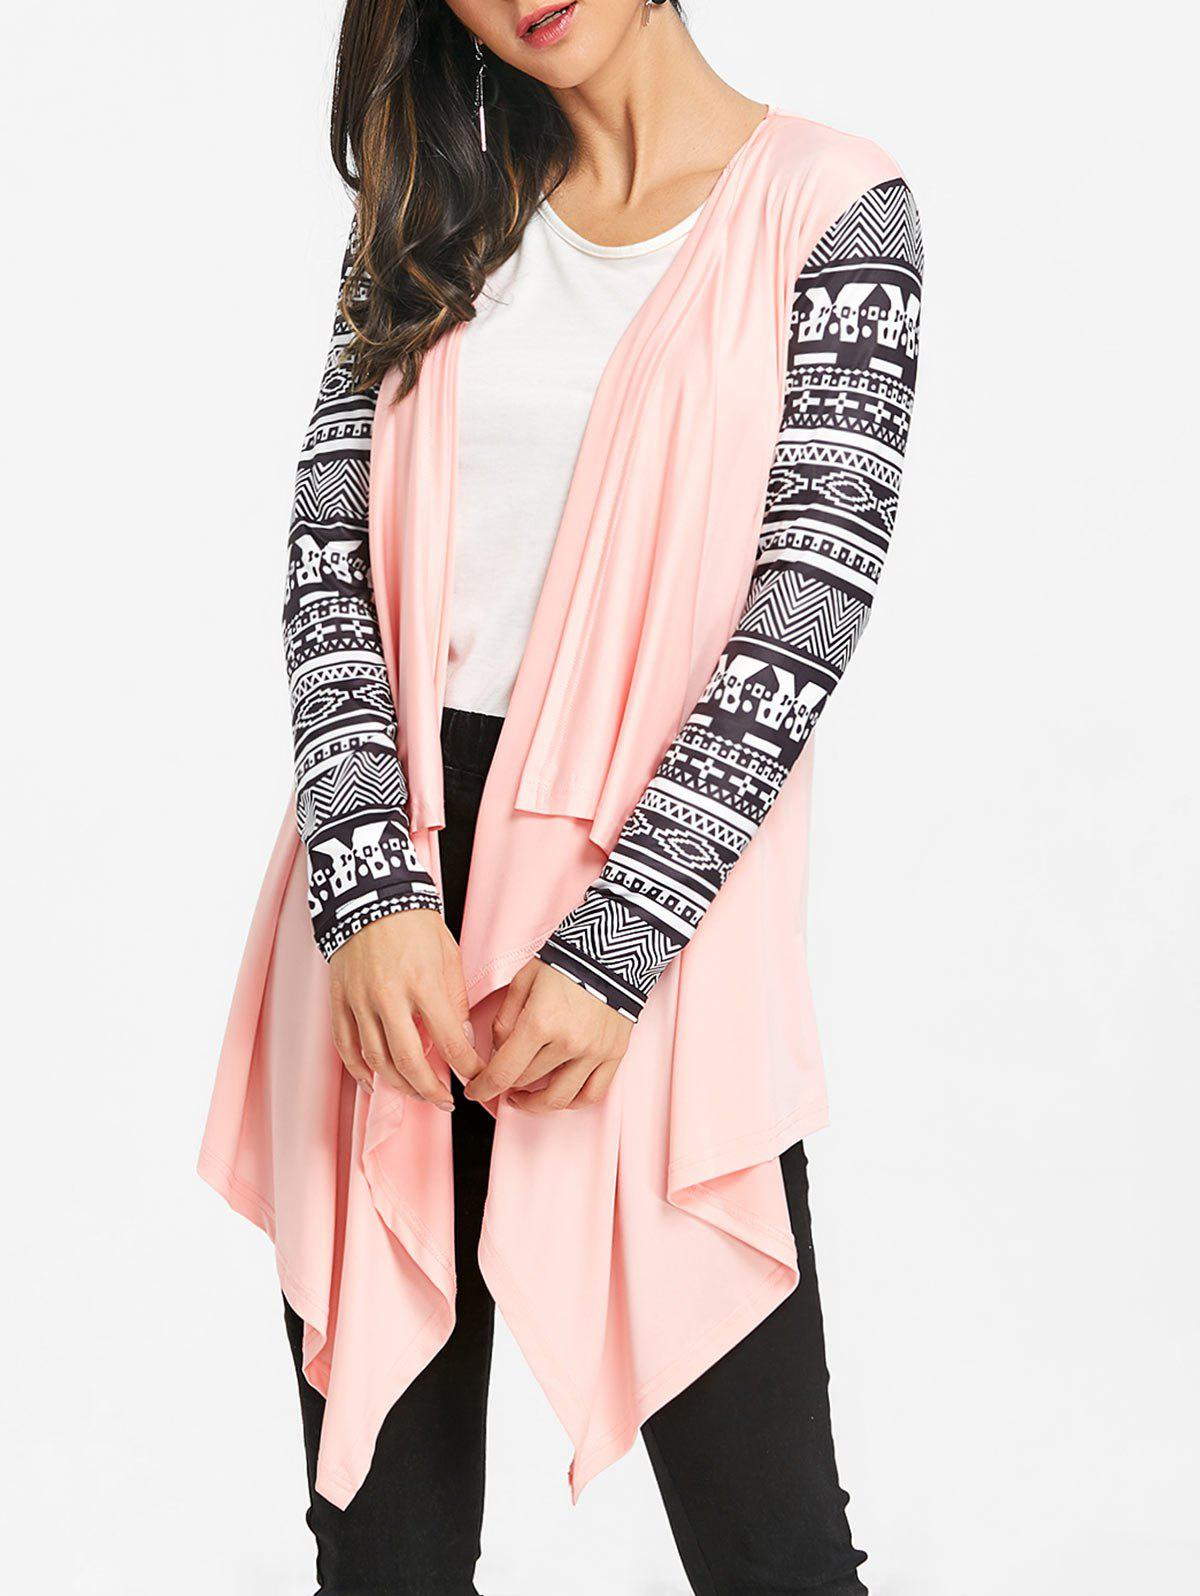 Tribal Print Sleeve Draped Asymmetric Cardigan - PINK XL